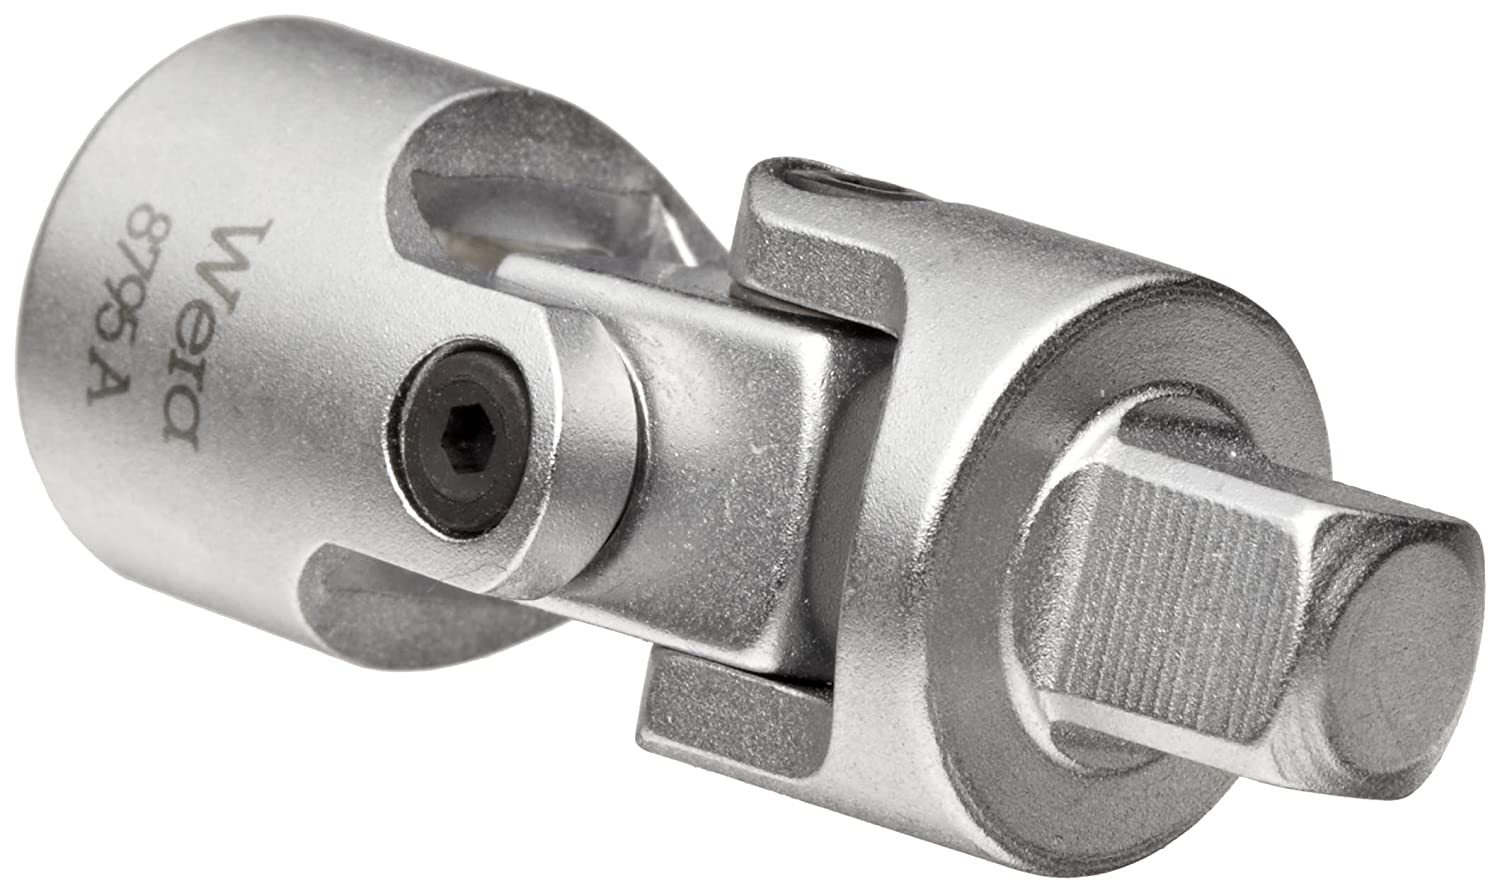 Square drive 1//4 Head x 35.5mm Universal Joint Wera Zyklop 8795 A Universal joint